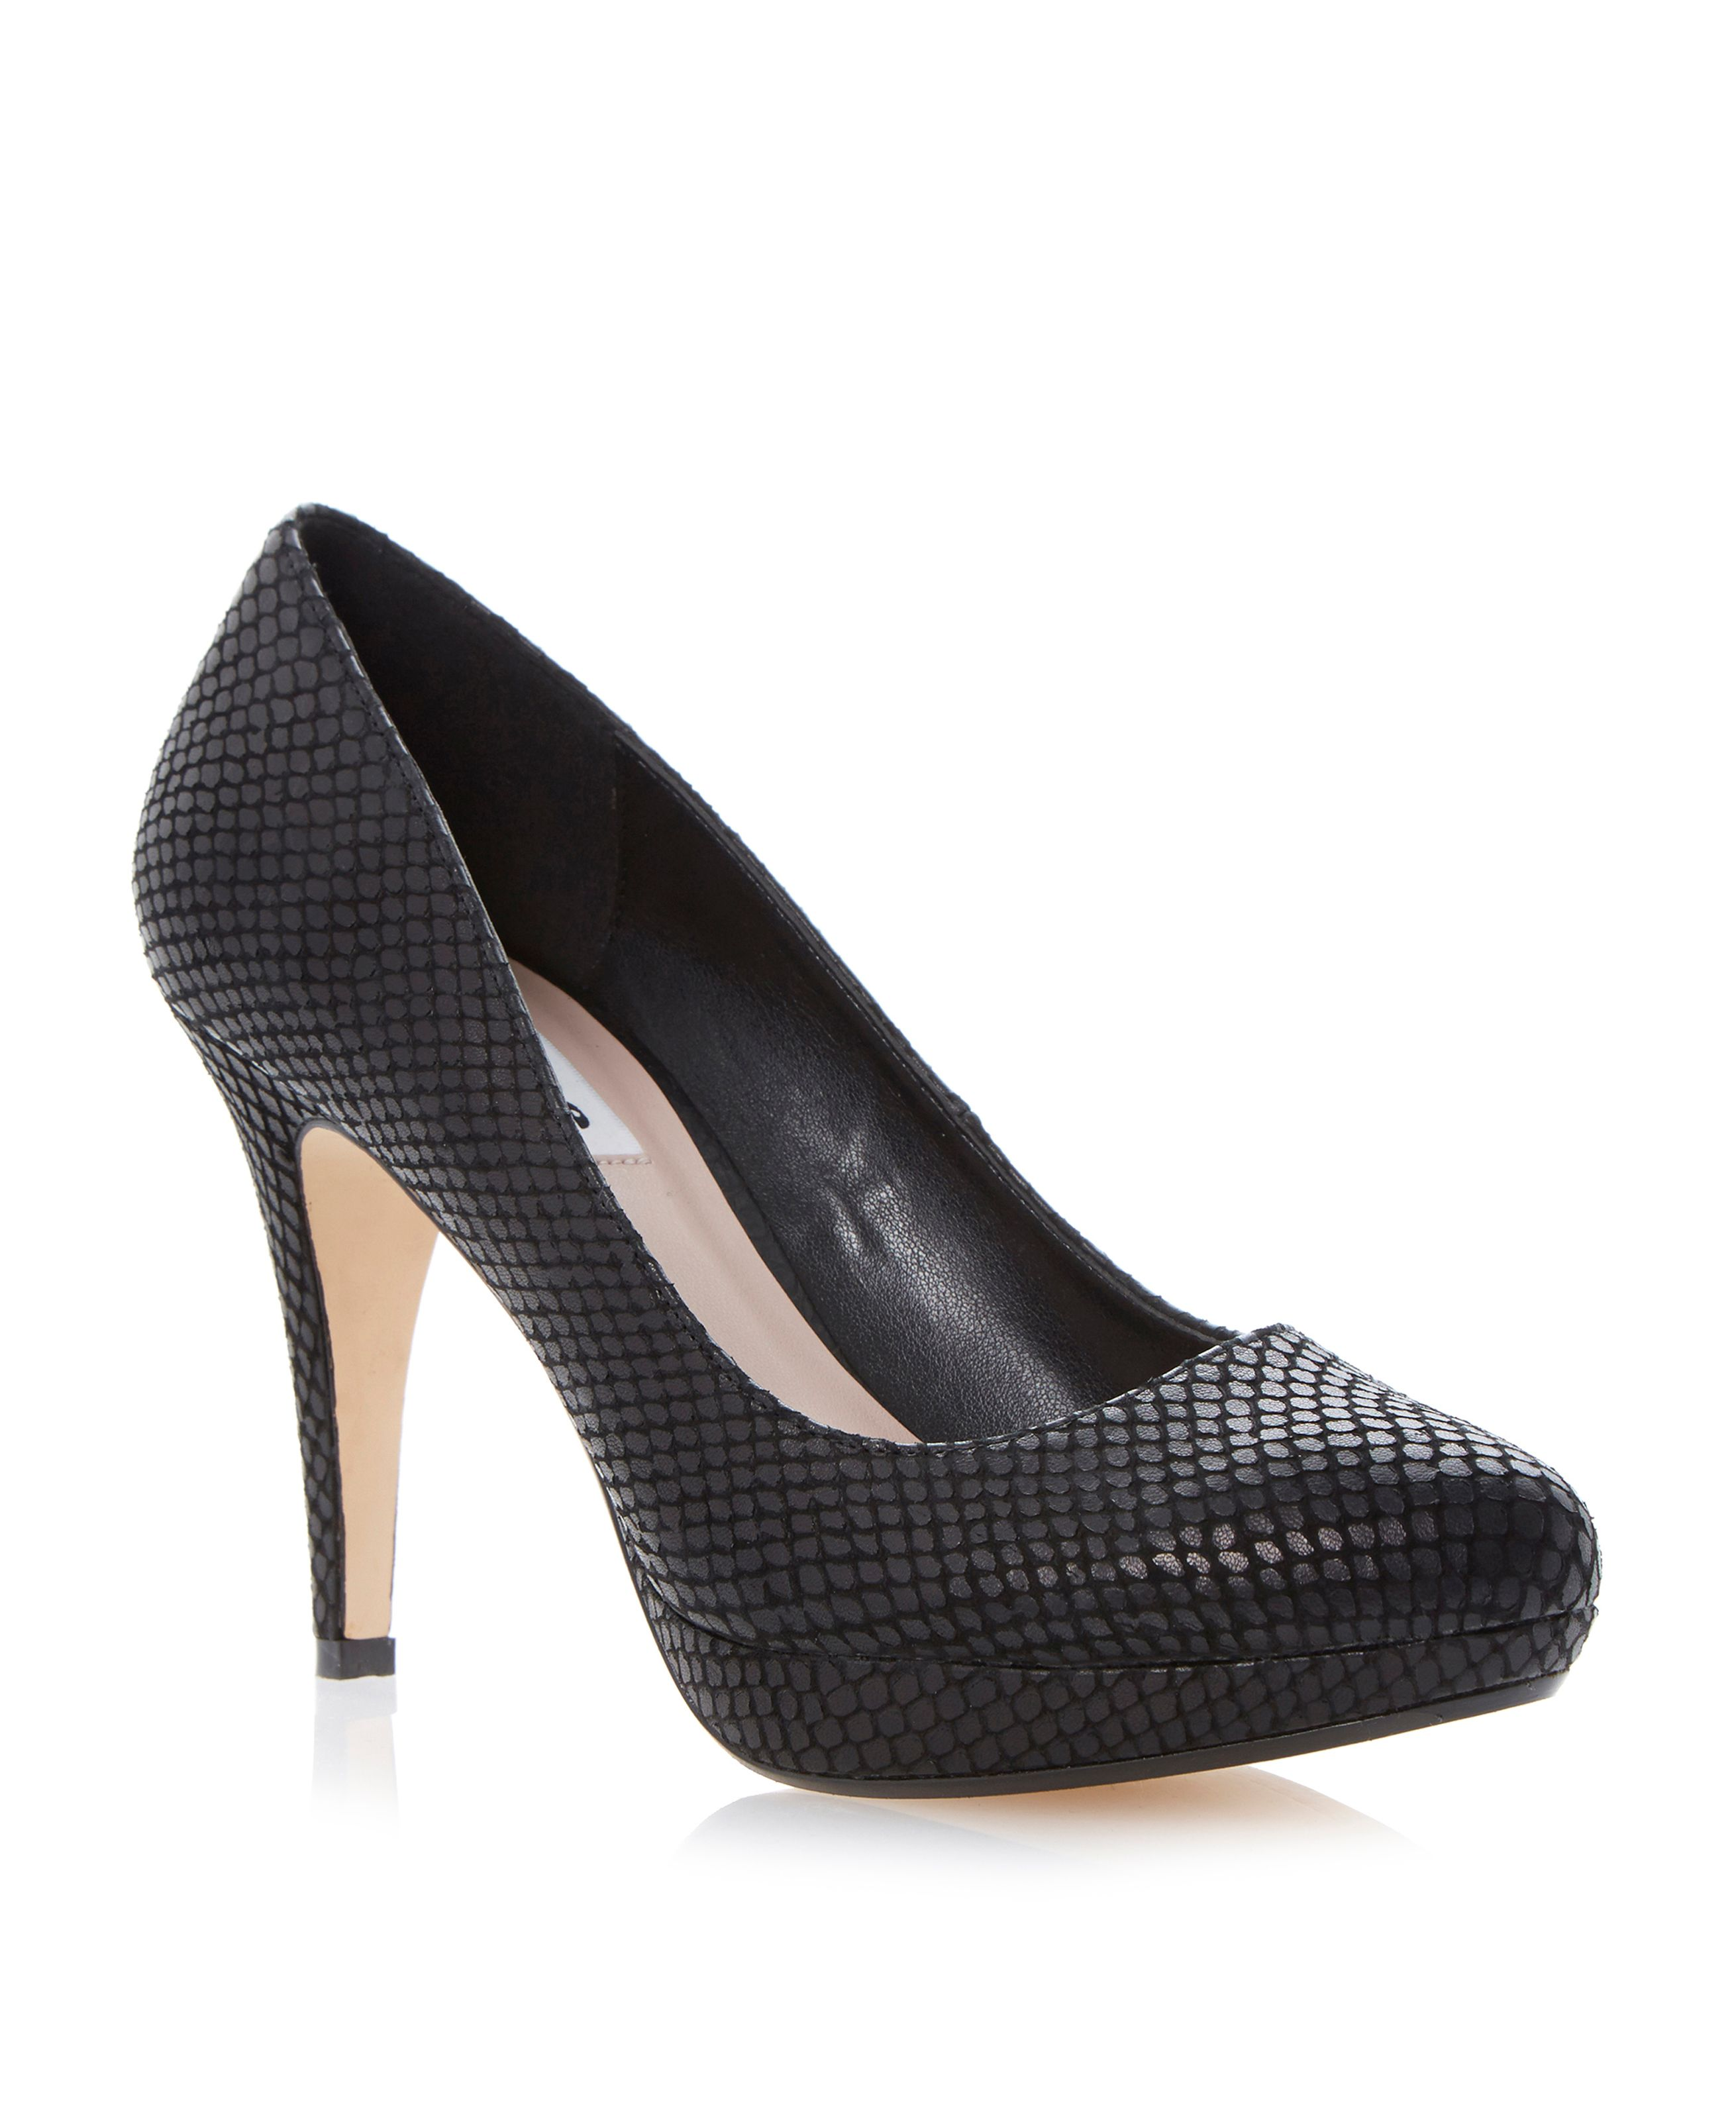 Angelinee reptile print platform court shoes